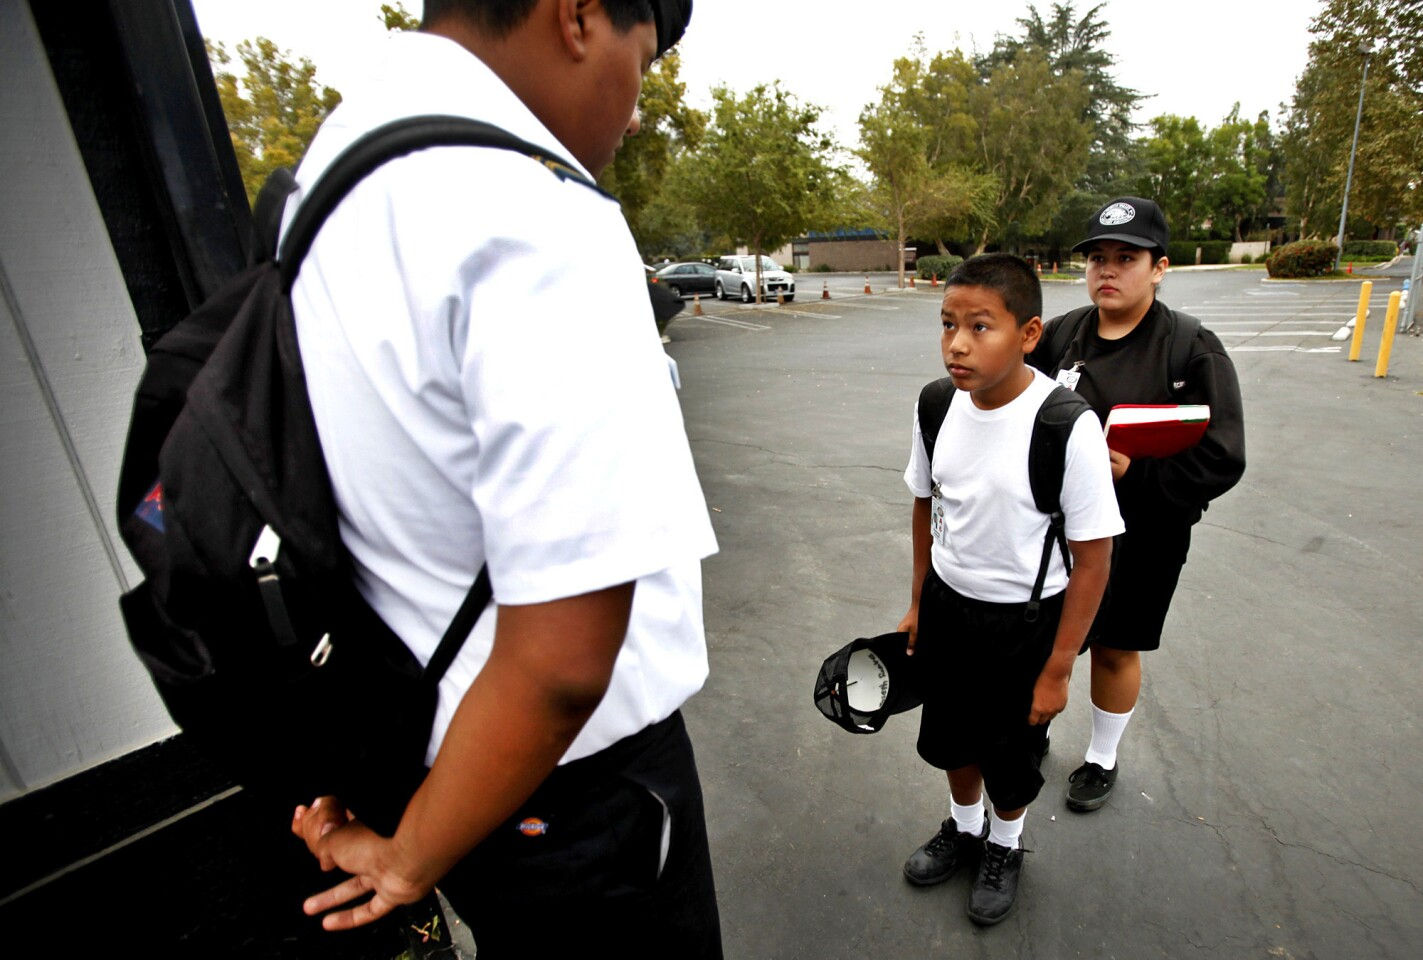 North Valley Military Institute sixth-grade student Joseph Ramirez, right, is inspected by 10th-grade student Robert Ramirez, left, before being allowed to enter the campus at the start of the school day on Oct. 2.